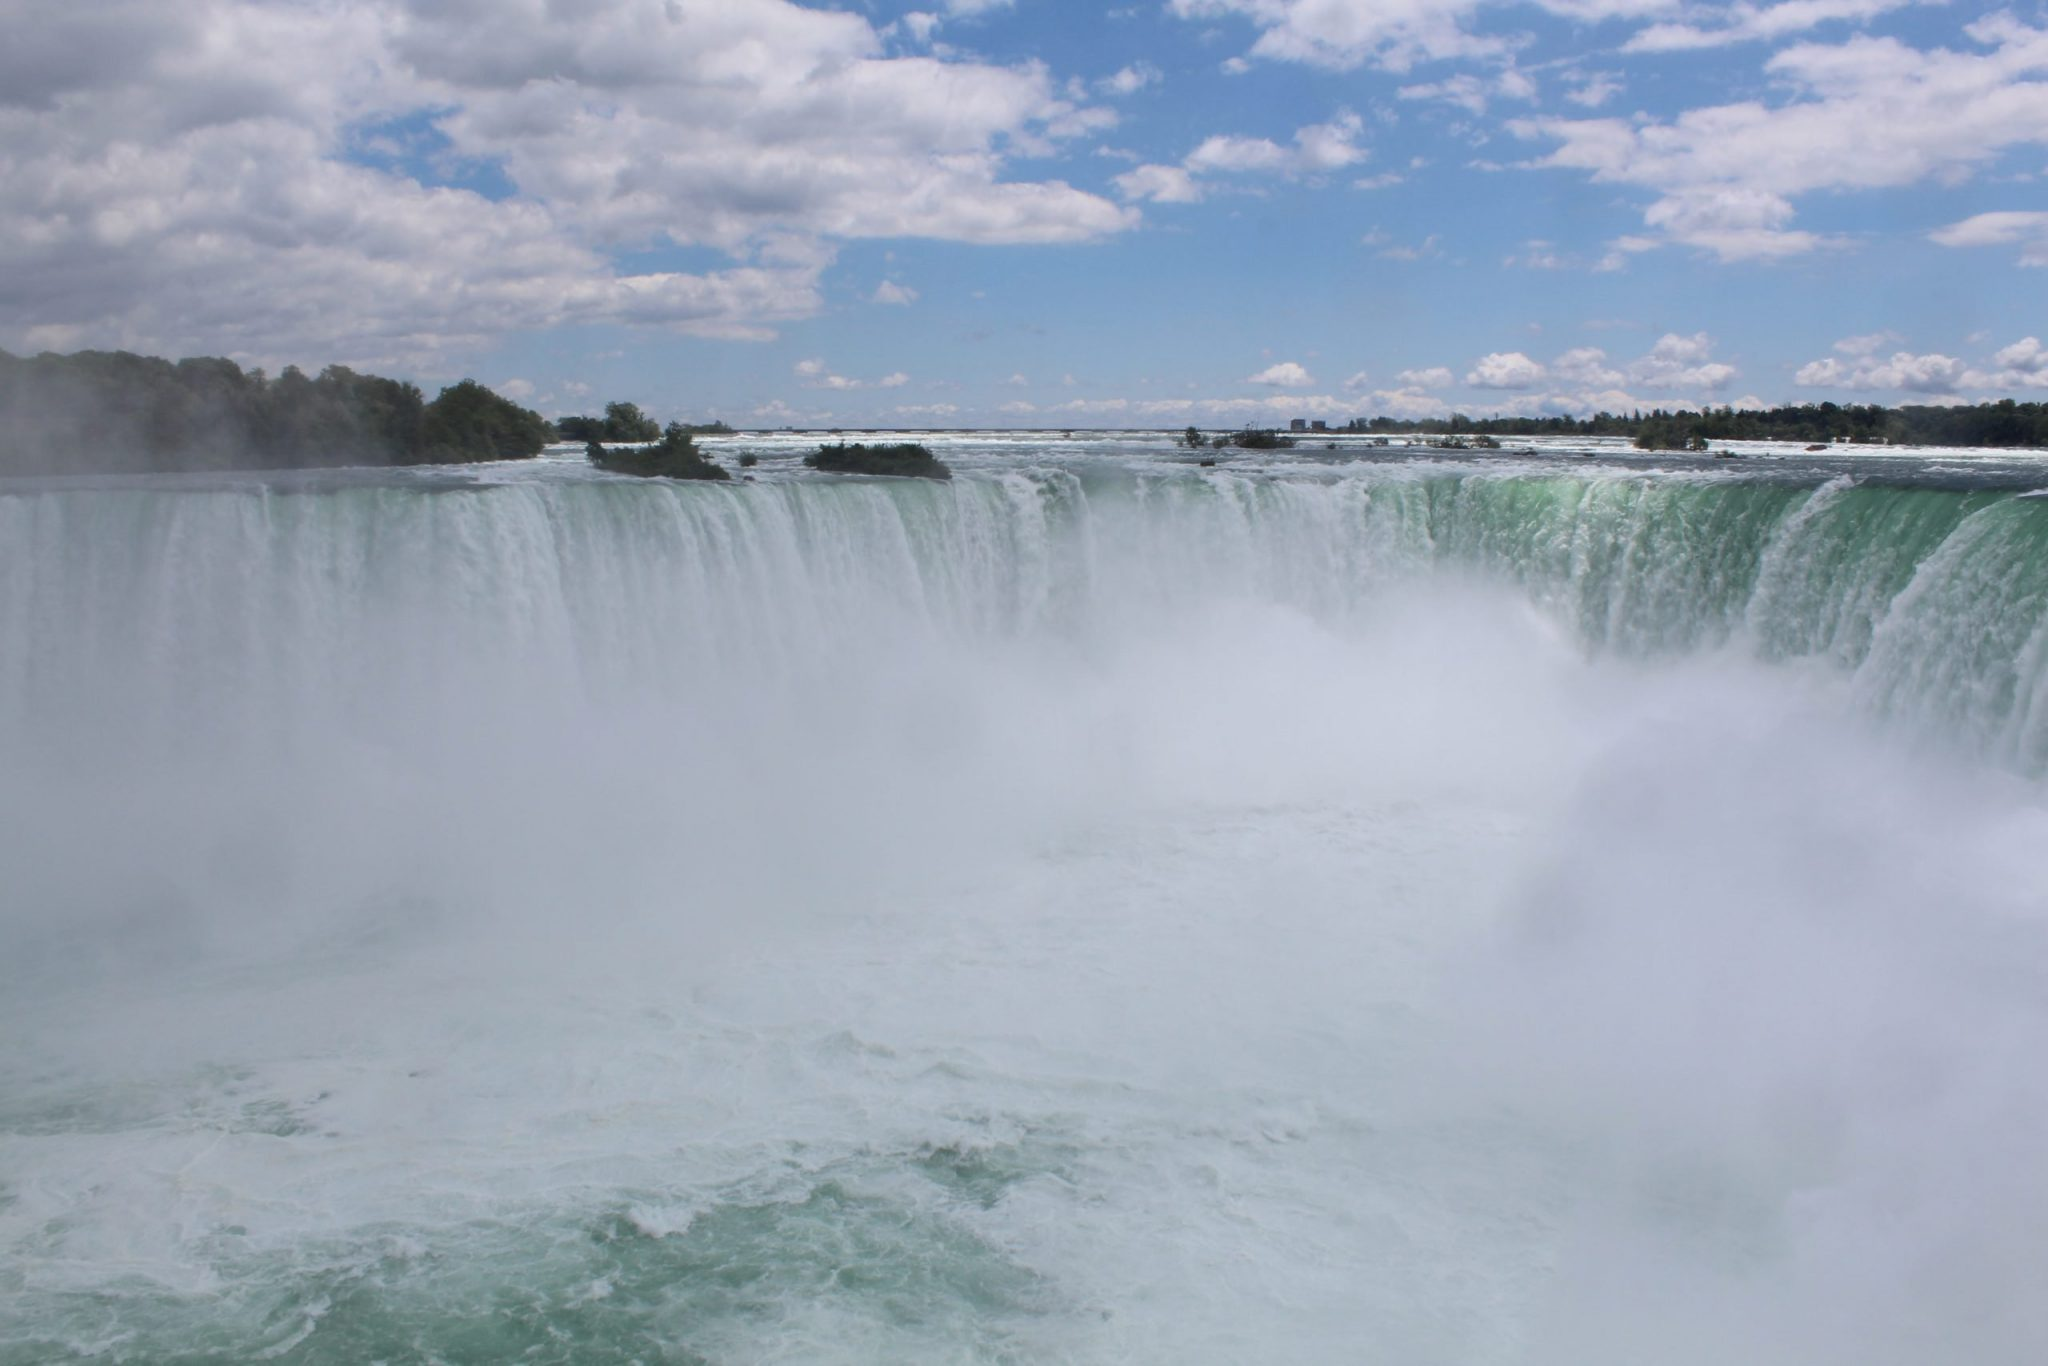 A photo of Horseshoe Fall